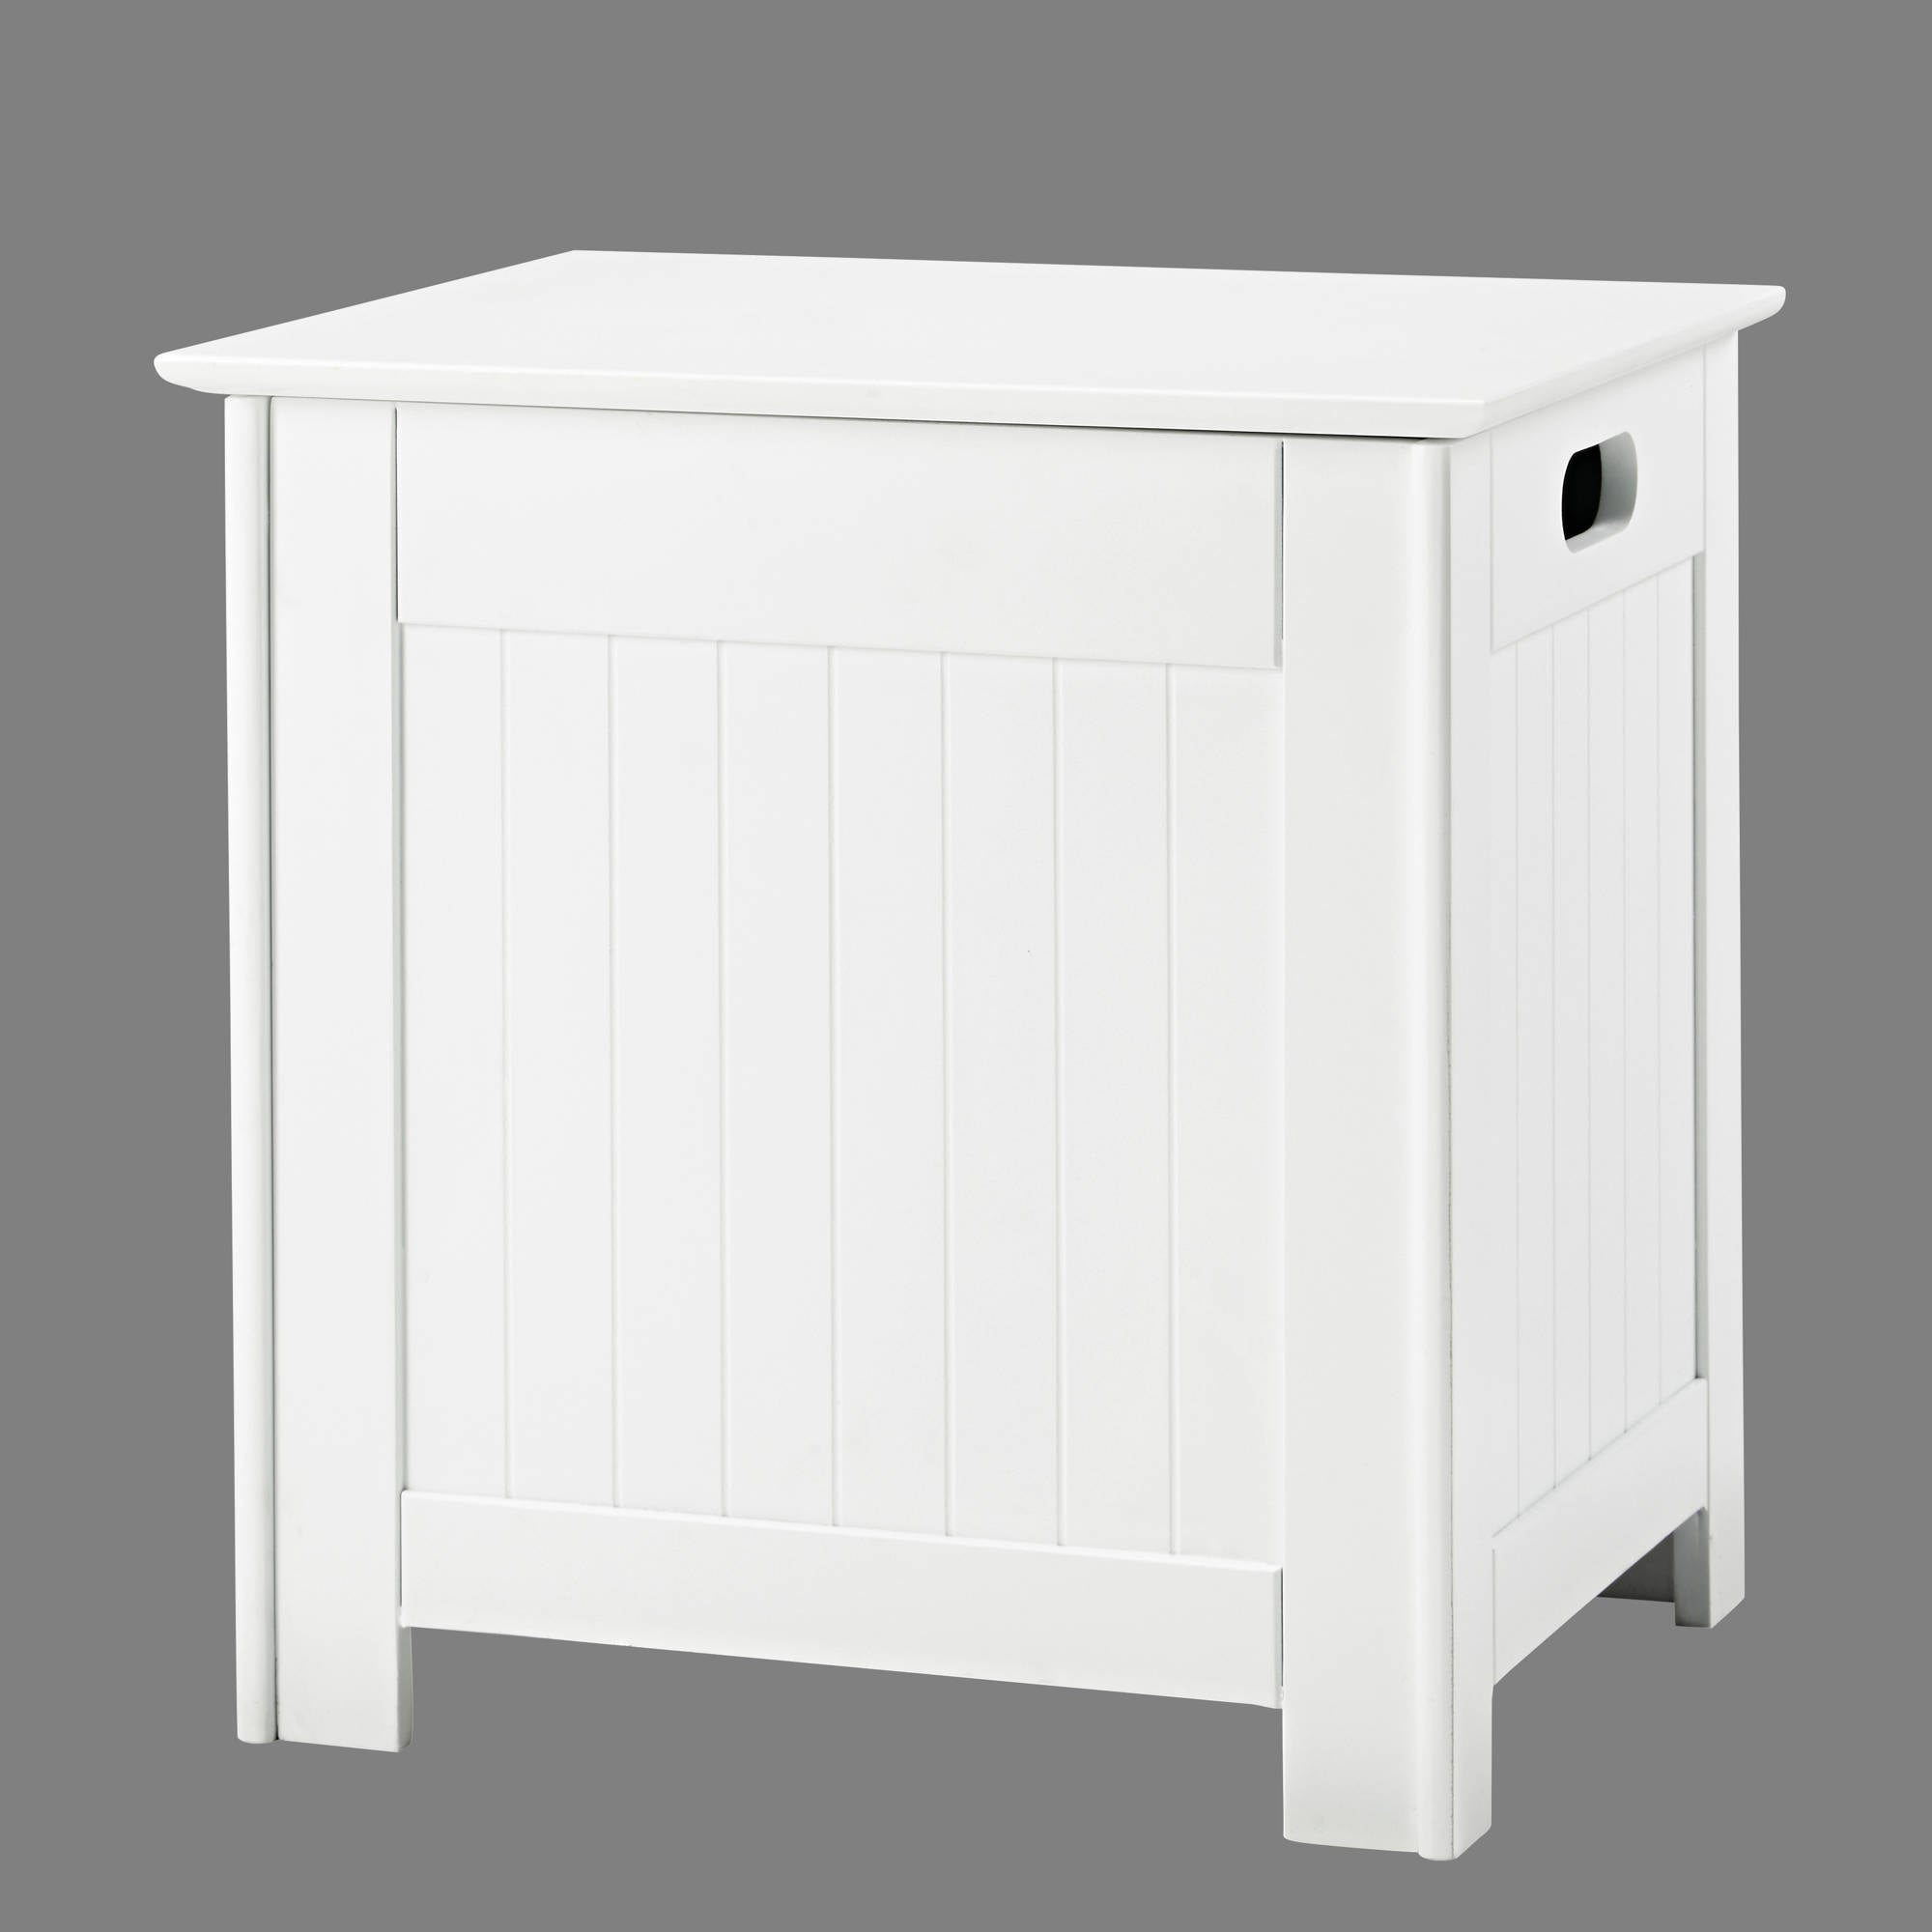 Kodiak White Laundry Box - Ezzo